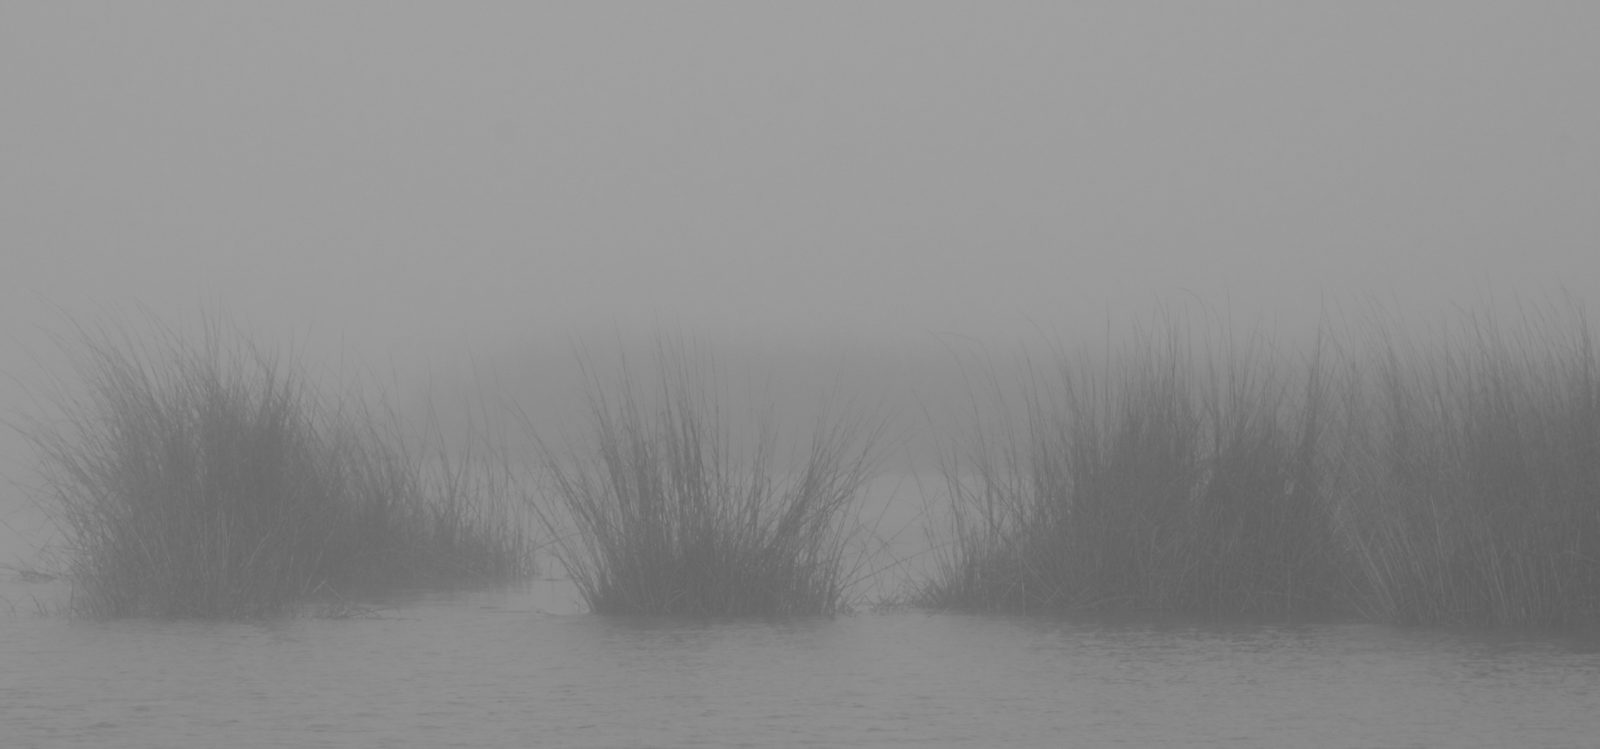 Misty Morning in the Bayou